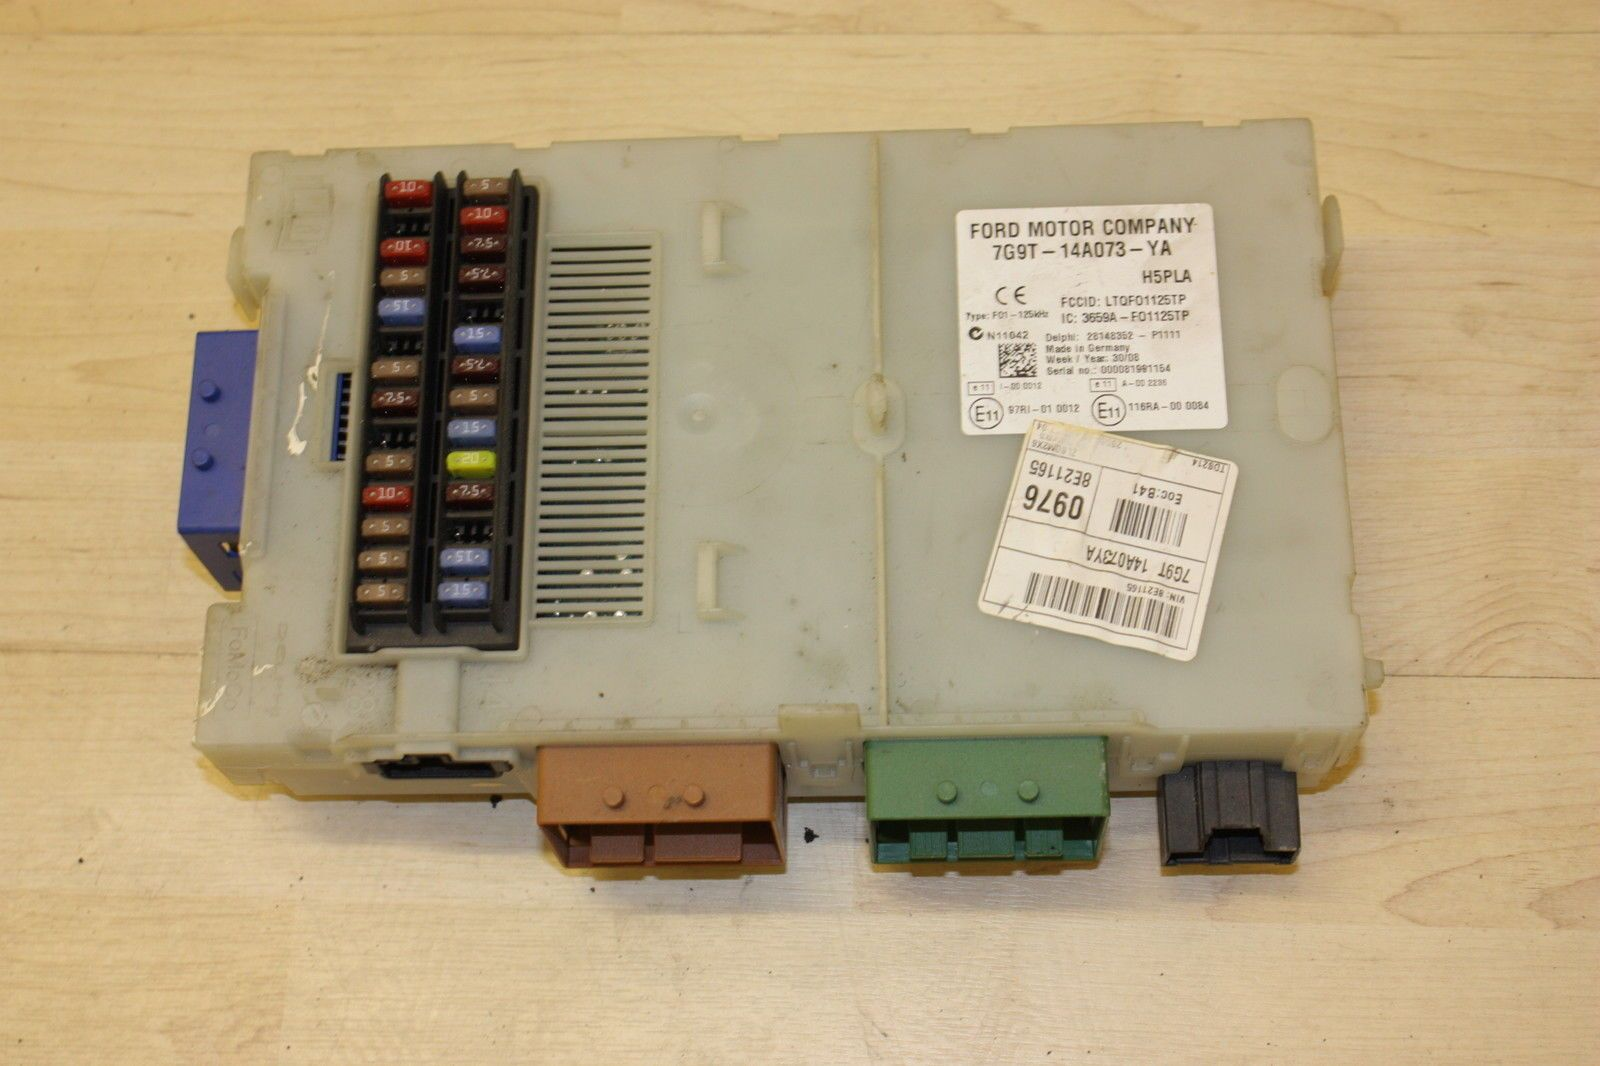 ford mondeo mk4 2.0 tdci body control module fuse box bcm 7g9t 14a073 ya 1681101 1192 p ford mondeo mk4 2 0 tdci body control module fuse box bcm 7g9t mondeo mk4 rear fuse box location at mifinder.co